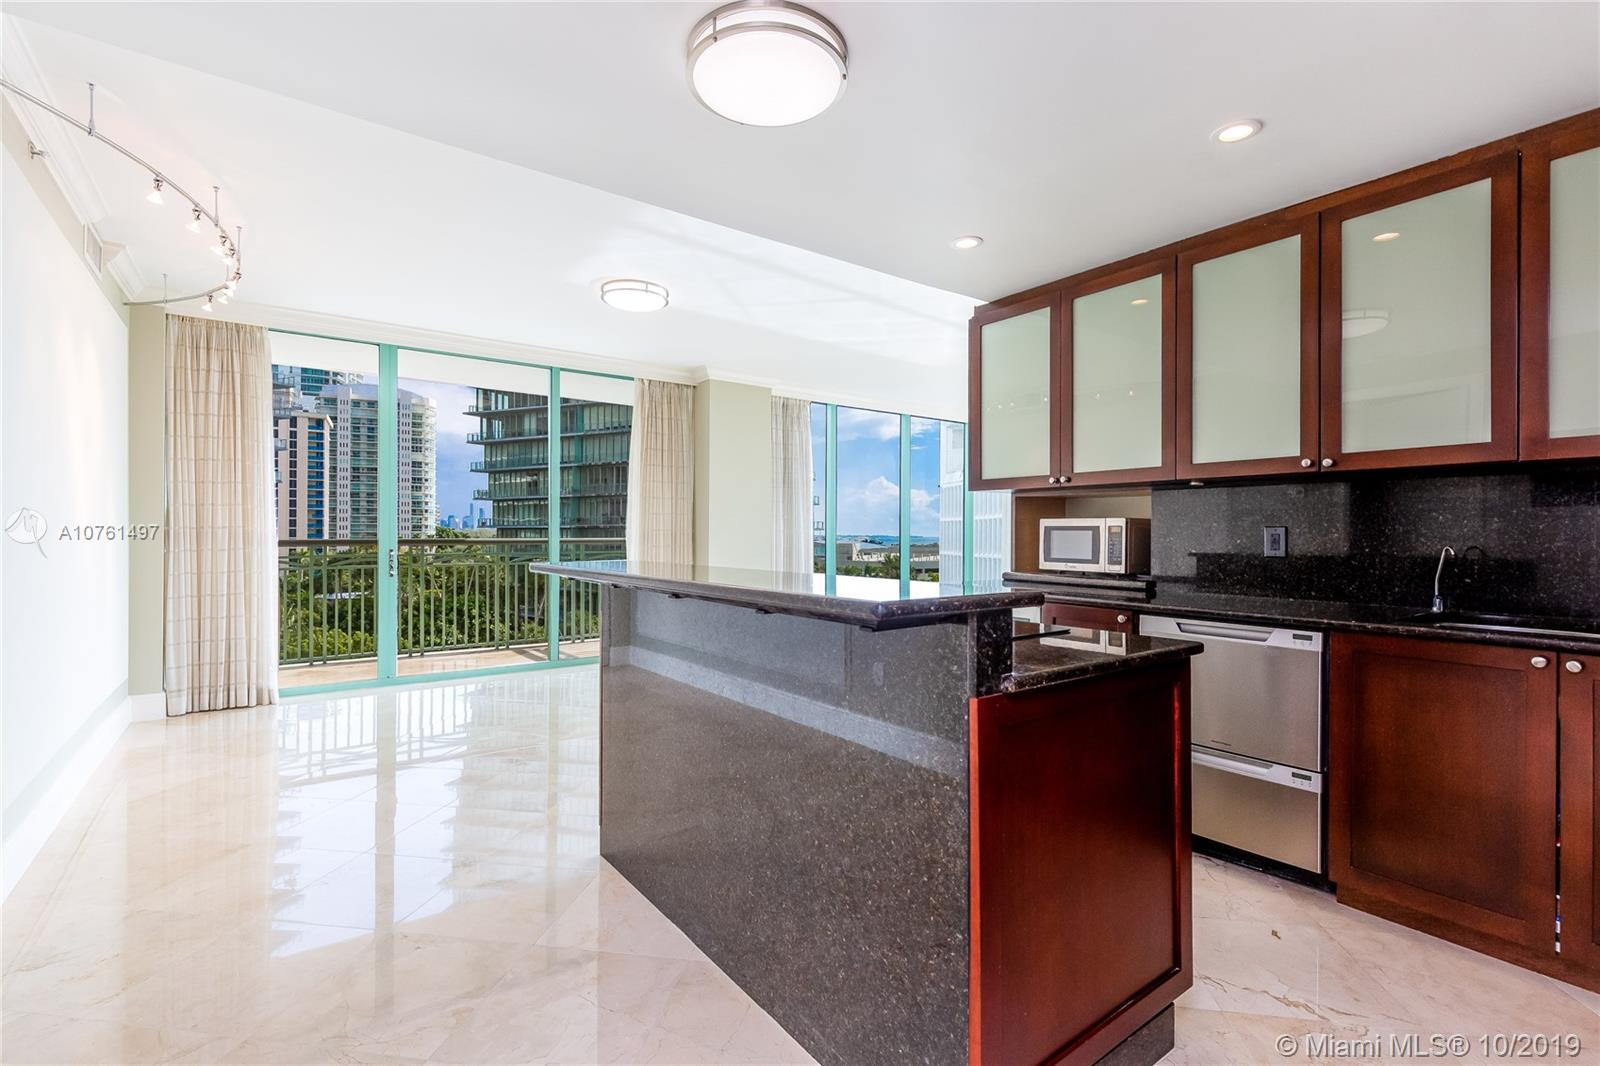 Photo of Ritz Carlton Coconut Gr. Apt 501